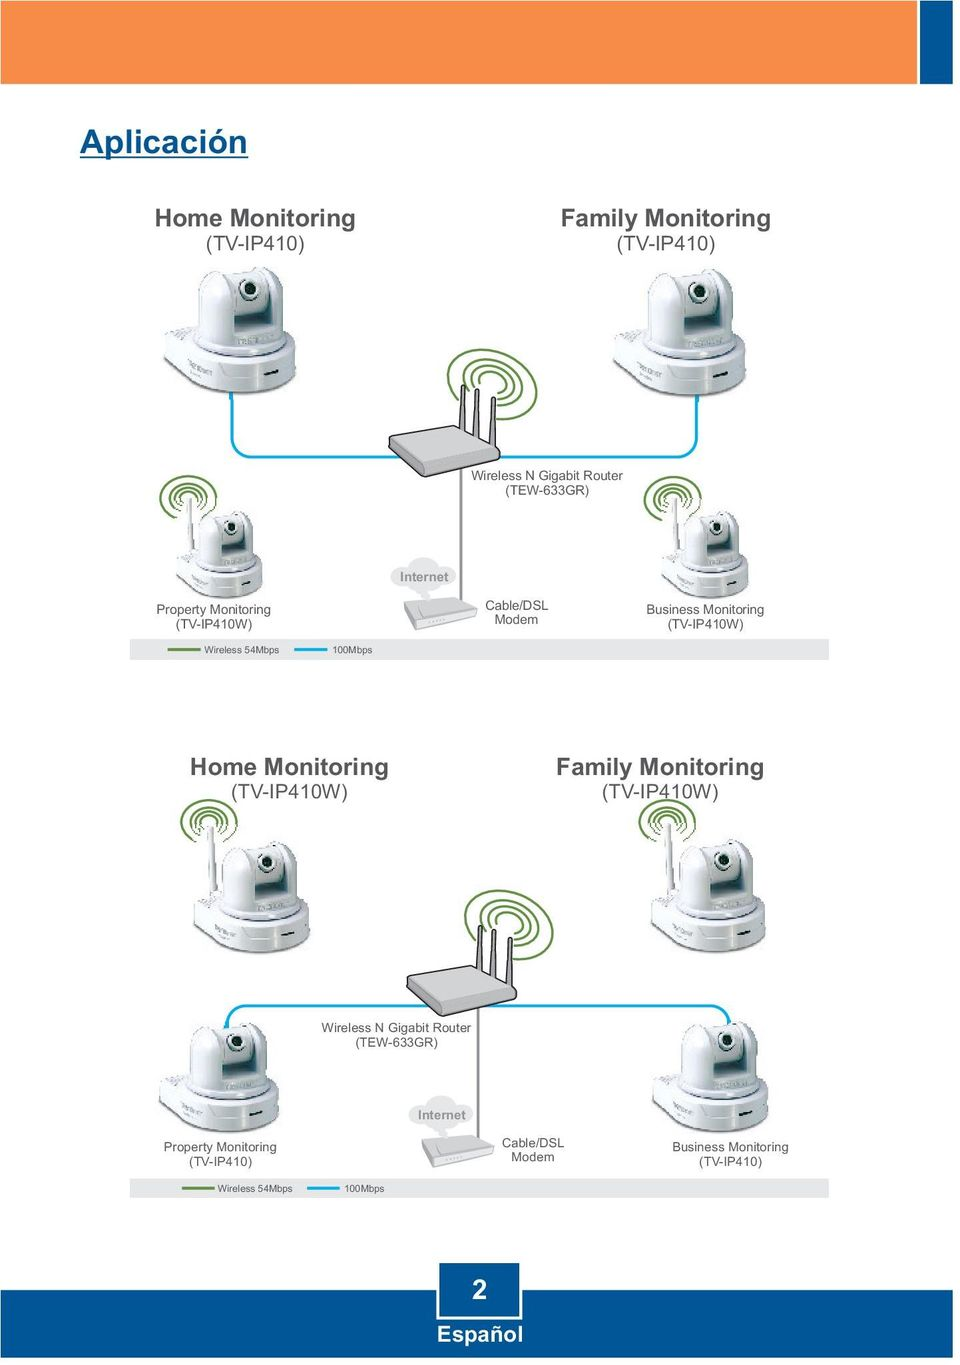 100Mbps Home Monitoring (TV-IP410W) Family Monitoring (TV-IP410W) Wireless N Gigabit Router (TEW-633GR)